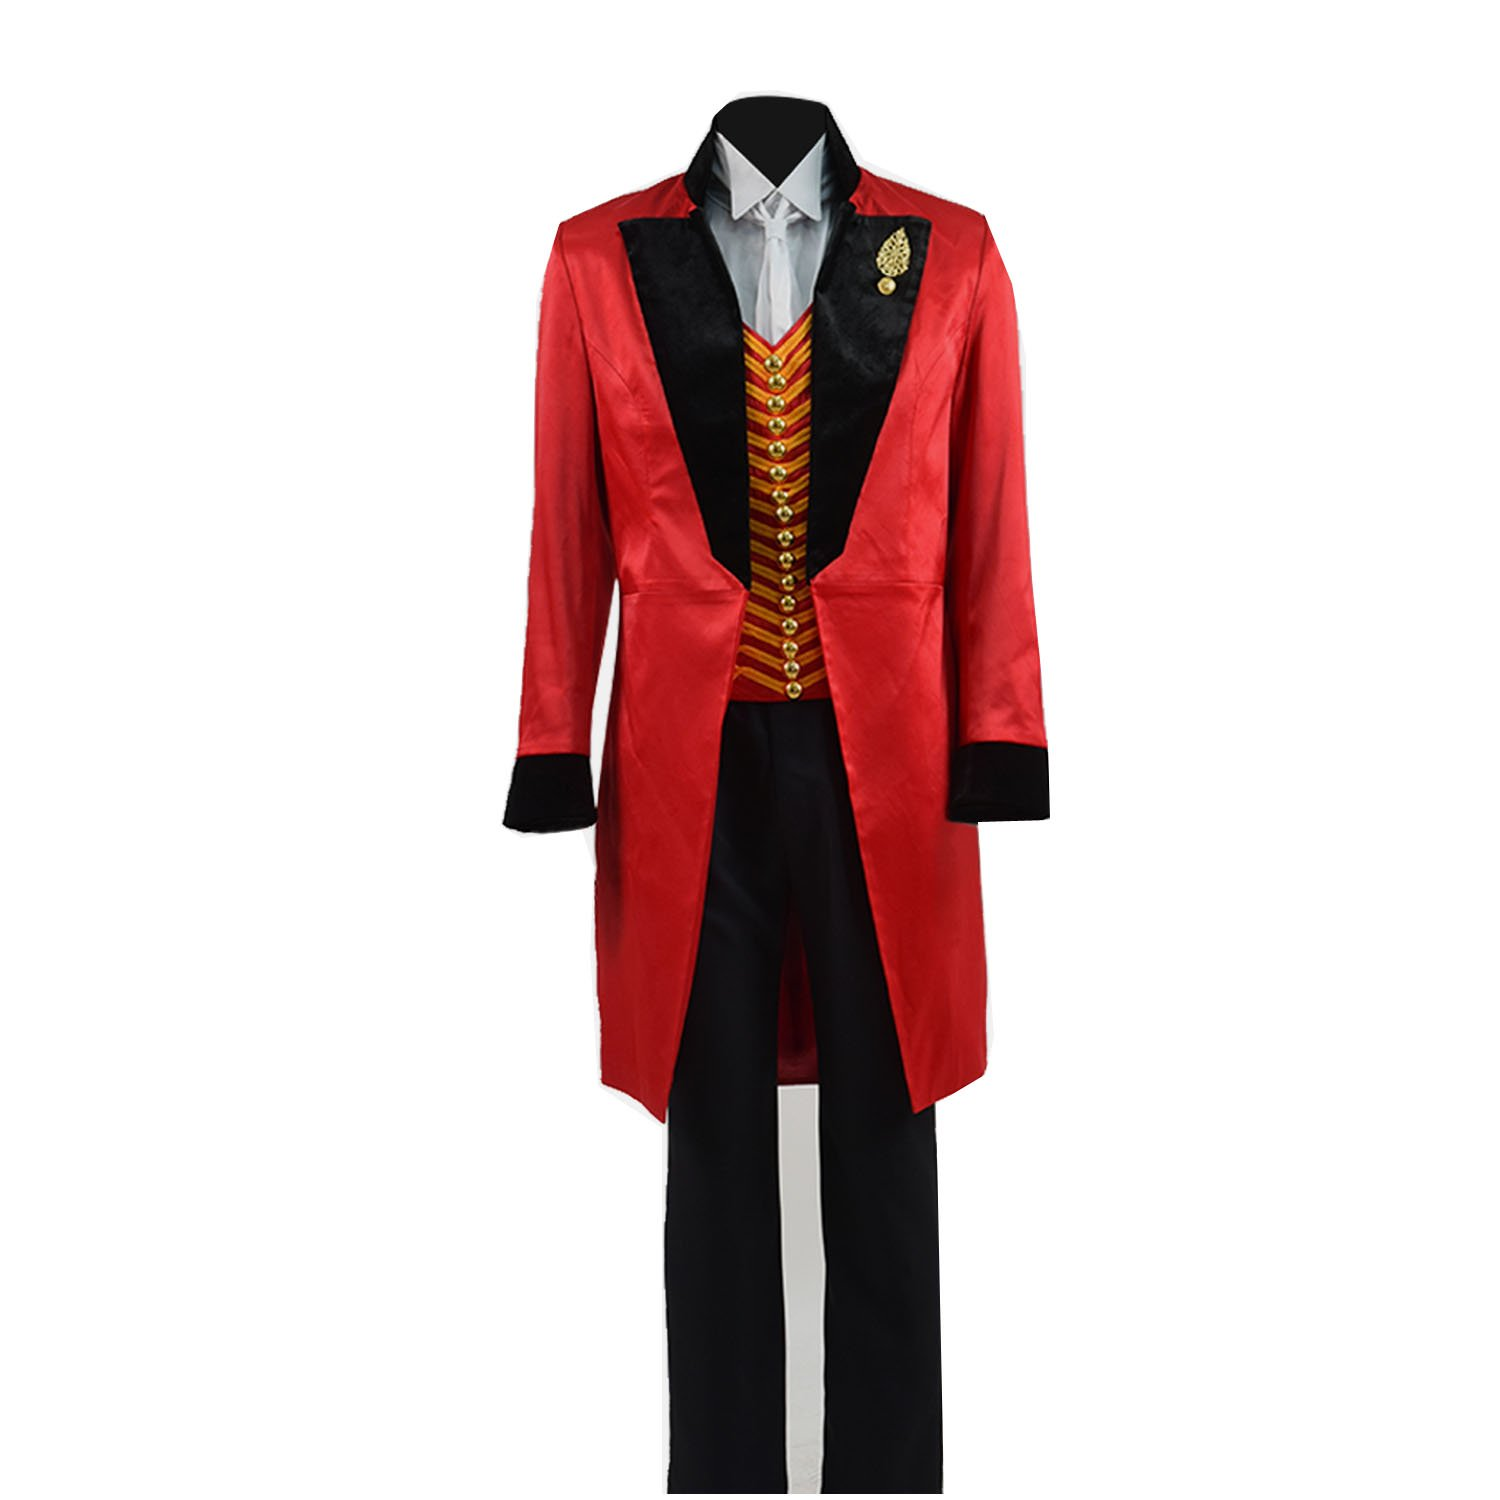 TISEA Men's Circus King Stage Performance Suits Halloween Outfit Cosplay Costume (M, Red Black) by TISEA